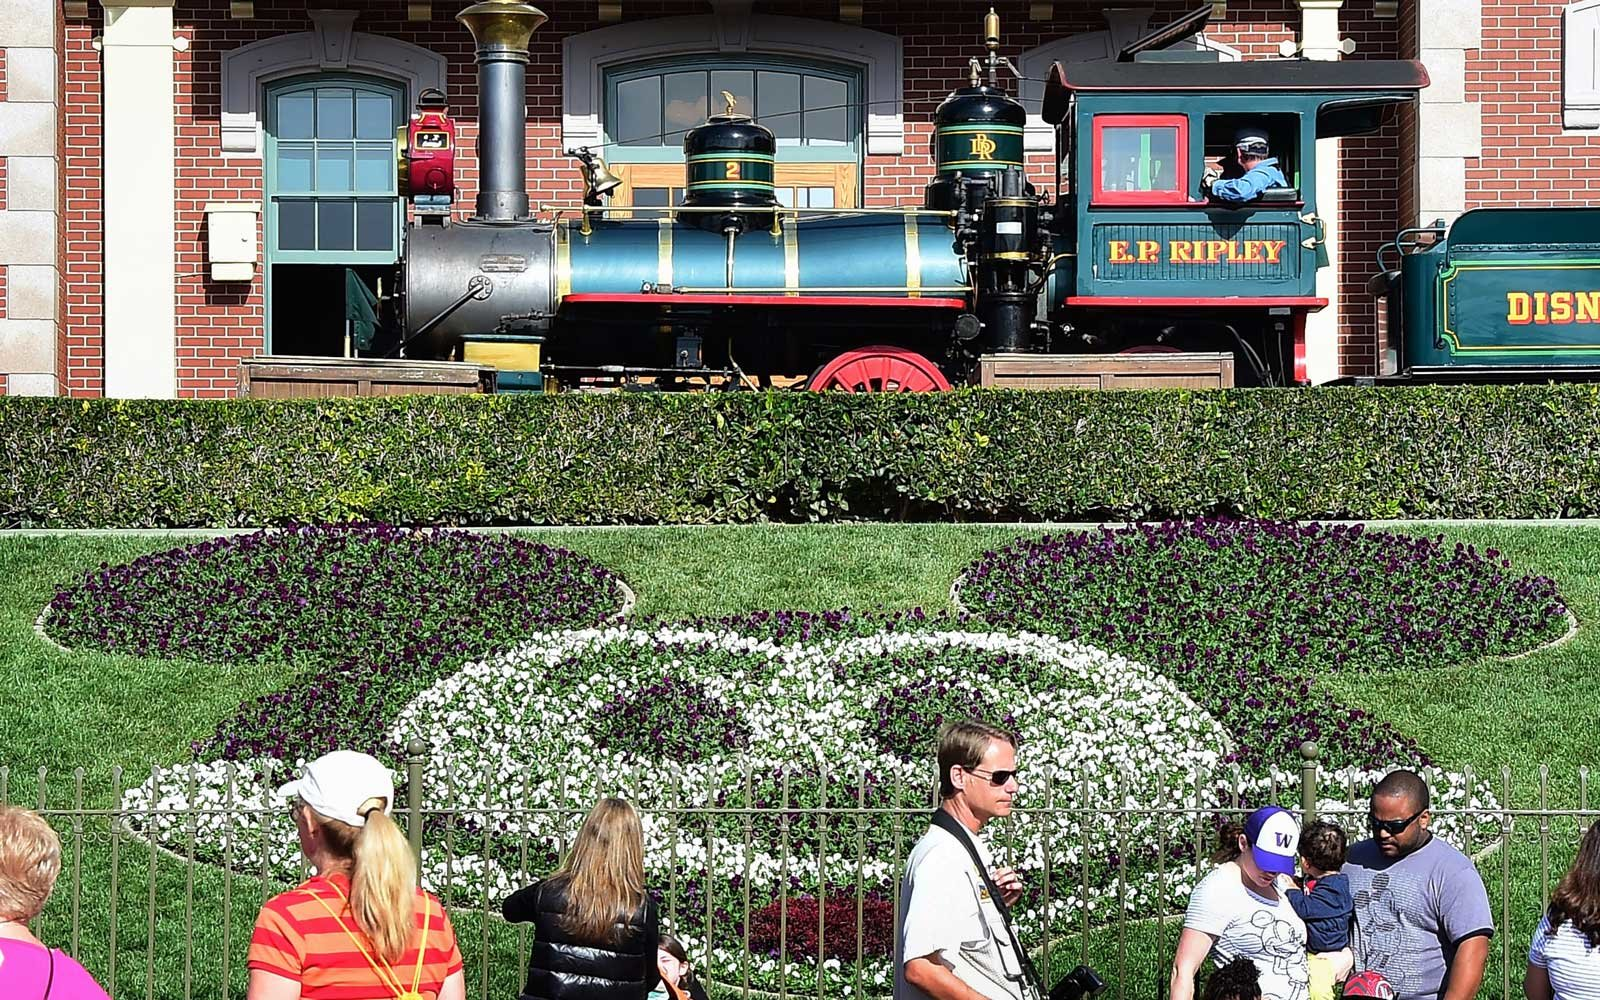 Disneyland closes cooling towers after some visitors hospitalized with Legionnaires' disease